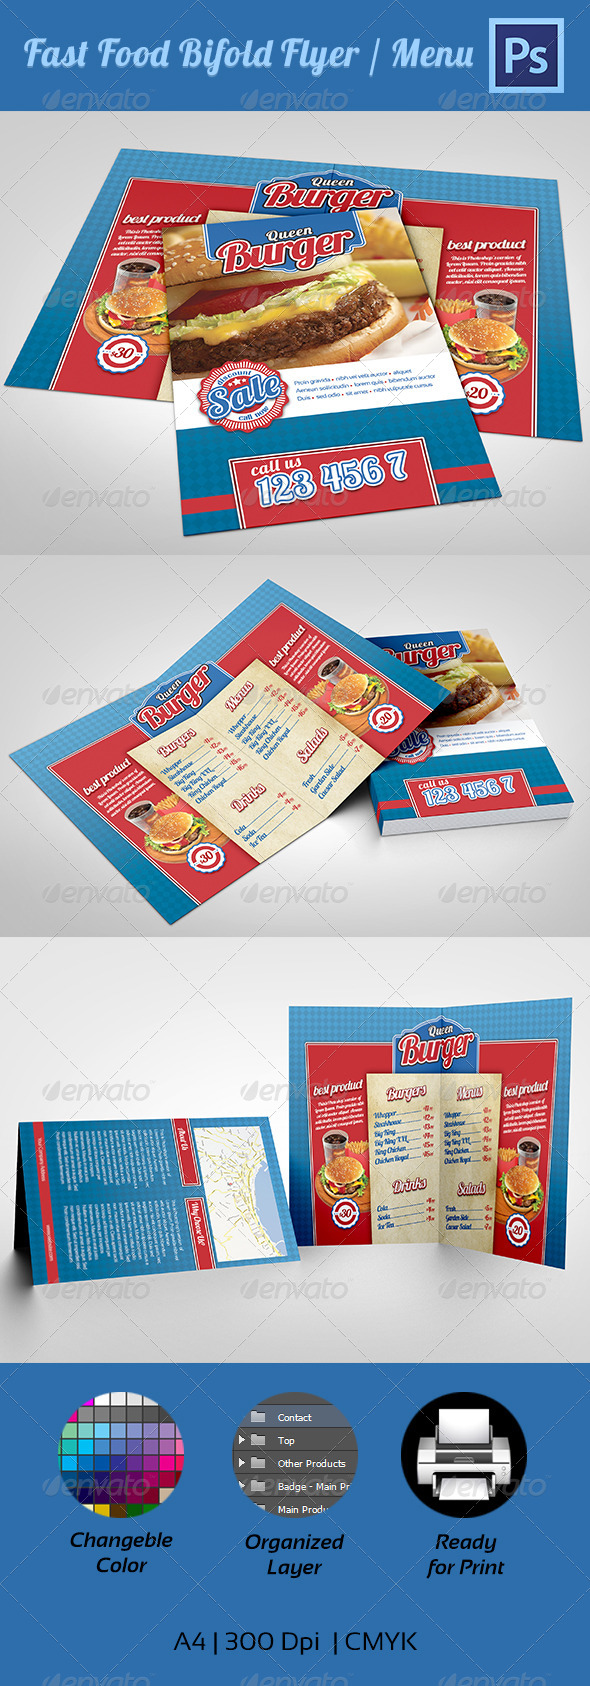 GraphicRiver Fast Food Menu Bifold Flyer 4217944